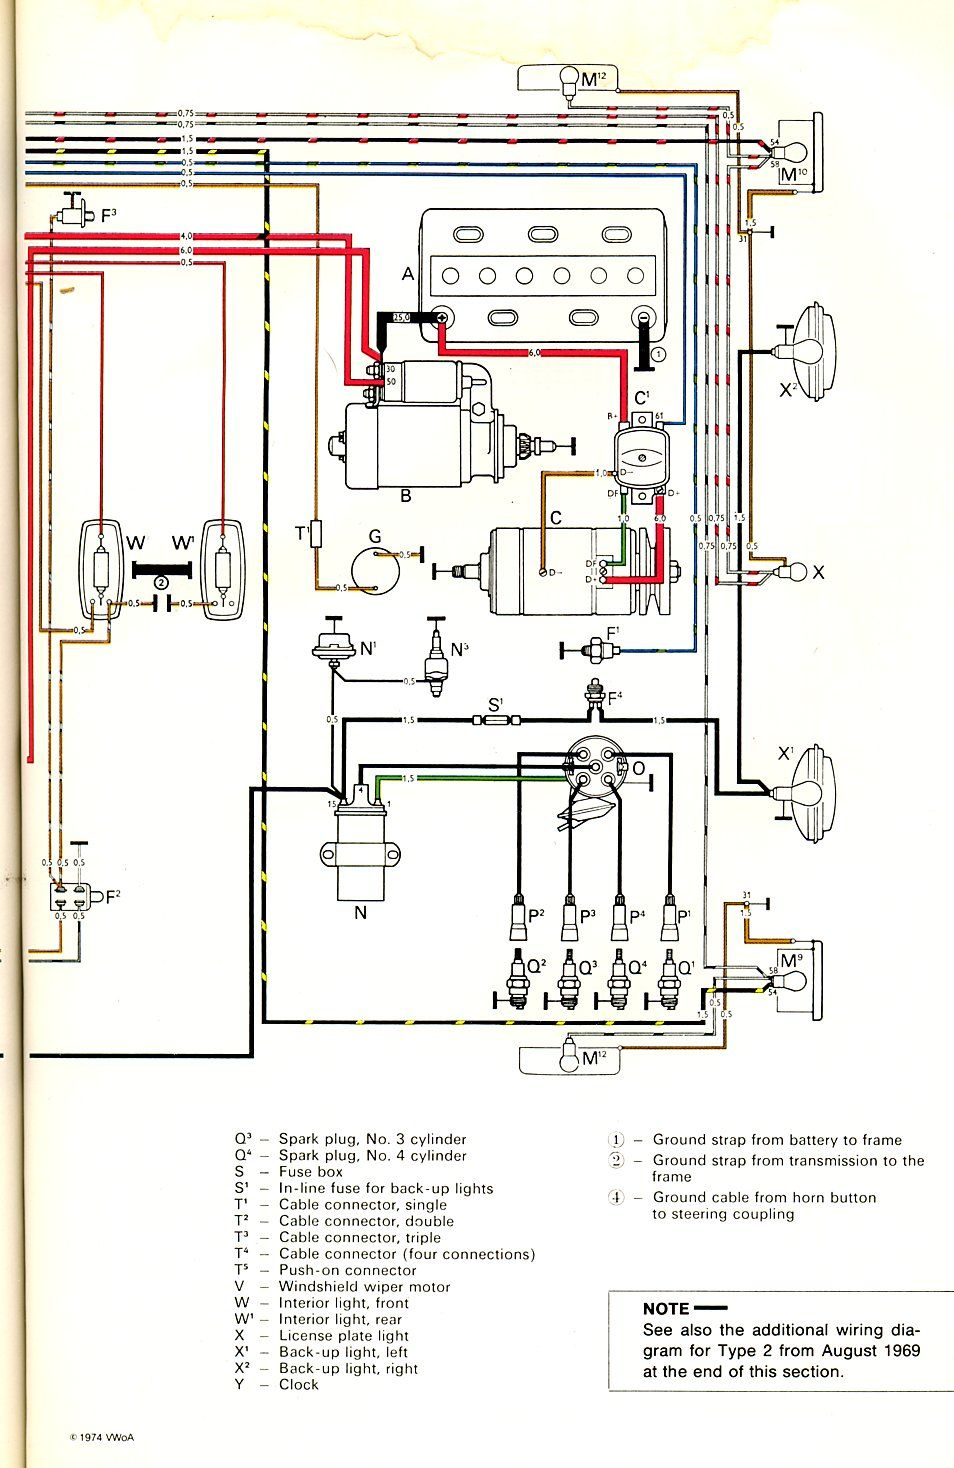 wrg 5168] wiring house frameelectrical wiring drawing